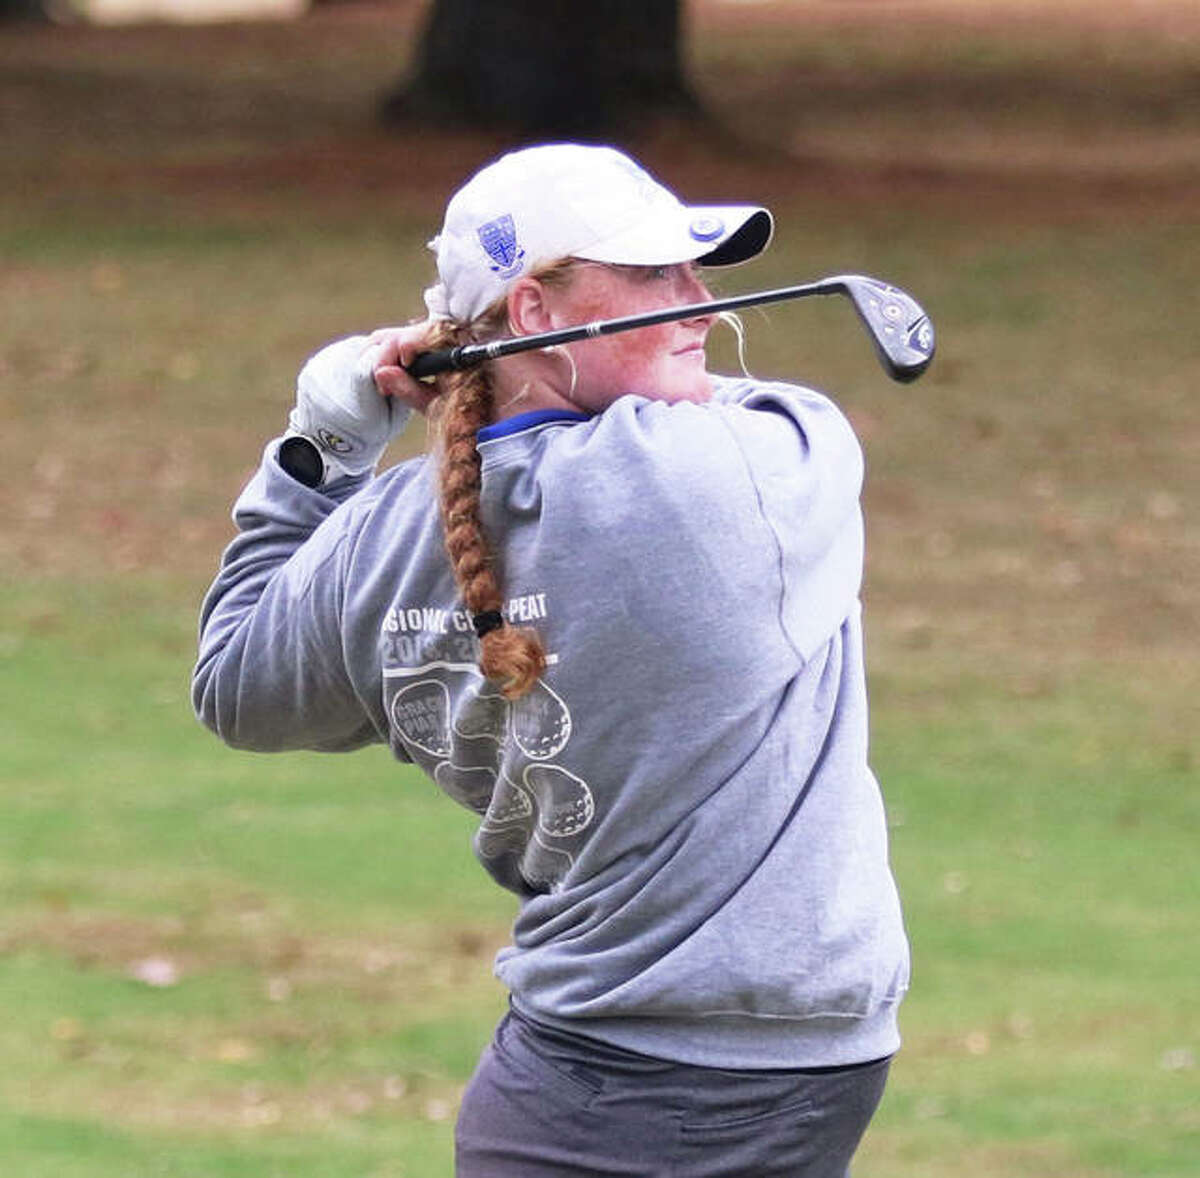 Marquette's Gracie Piar, shown in last season's sectional at Salem, shot 1-under par 71 to place third Friday at the Prep Tour Showcase at Hickory Point golf course in Decatur.